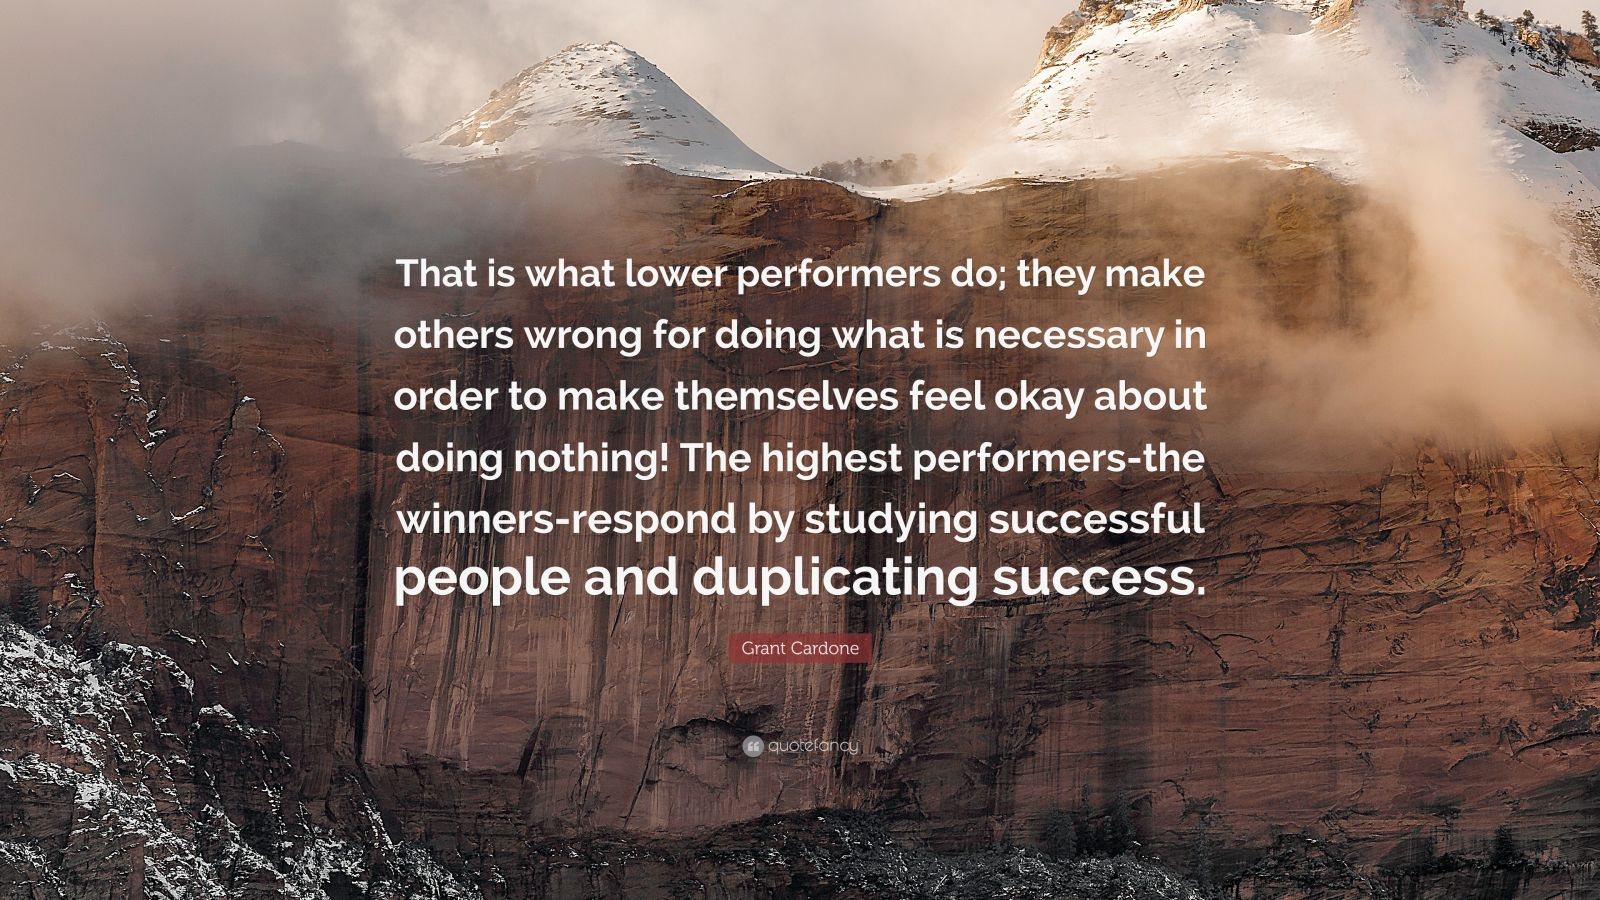 """Grant Cardone Quote: """"That is what lower performers do; they make others wrong for doing what is necessary in order to make themselves feel okay about doing nothing! The highest performers-the winners-respond by studying successful people and duplicating success."""""""